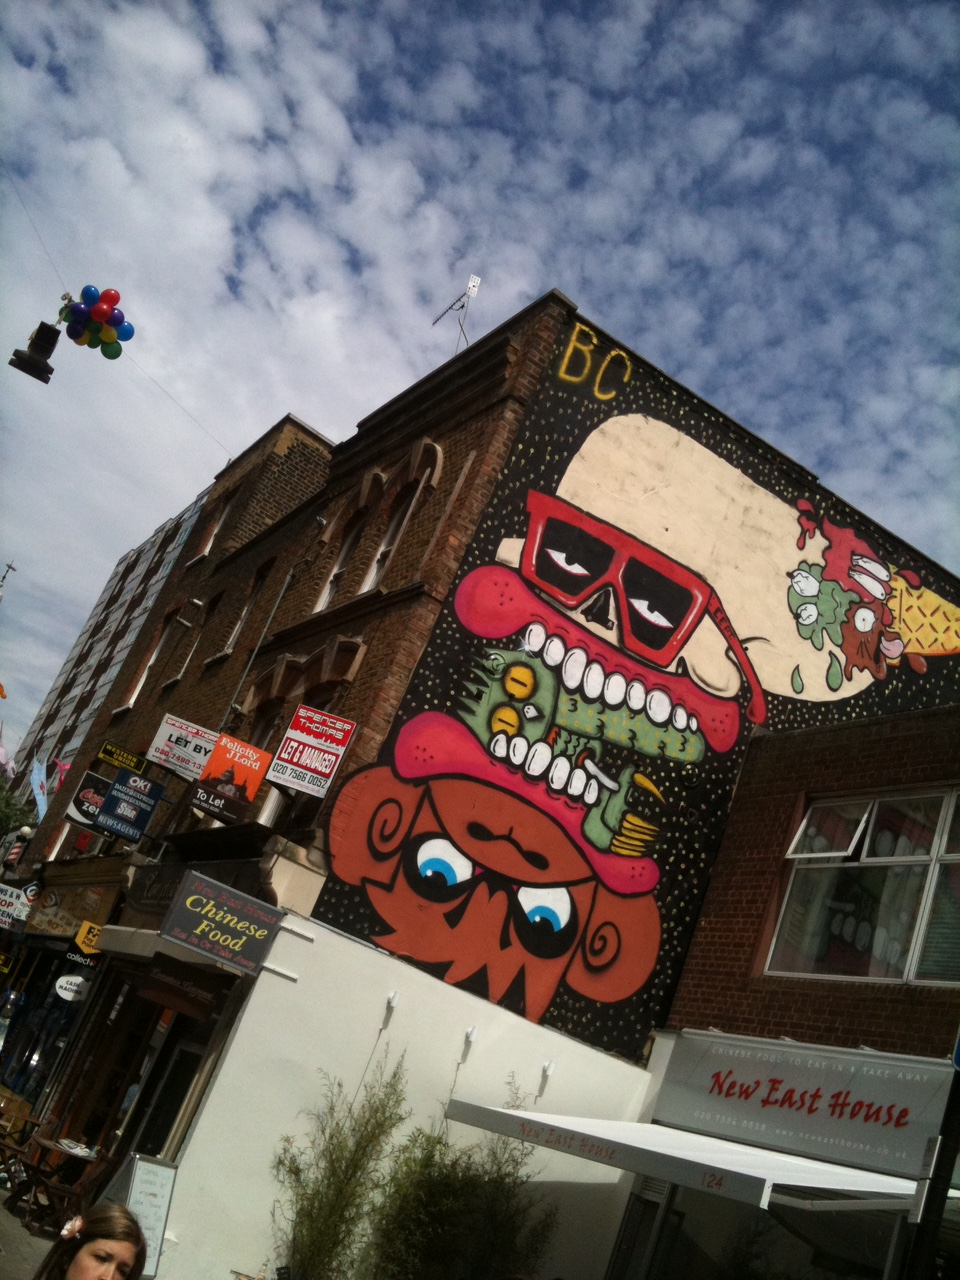 Whitecross Street is home to great street food and street art.